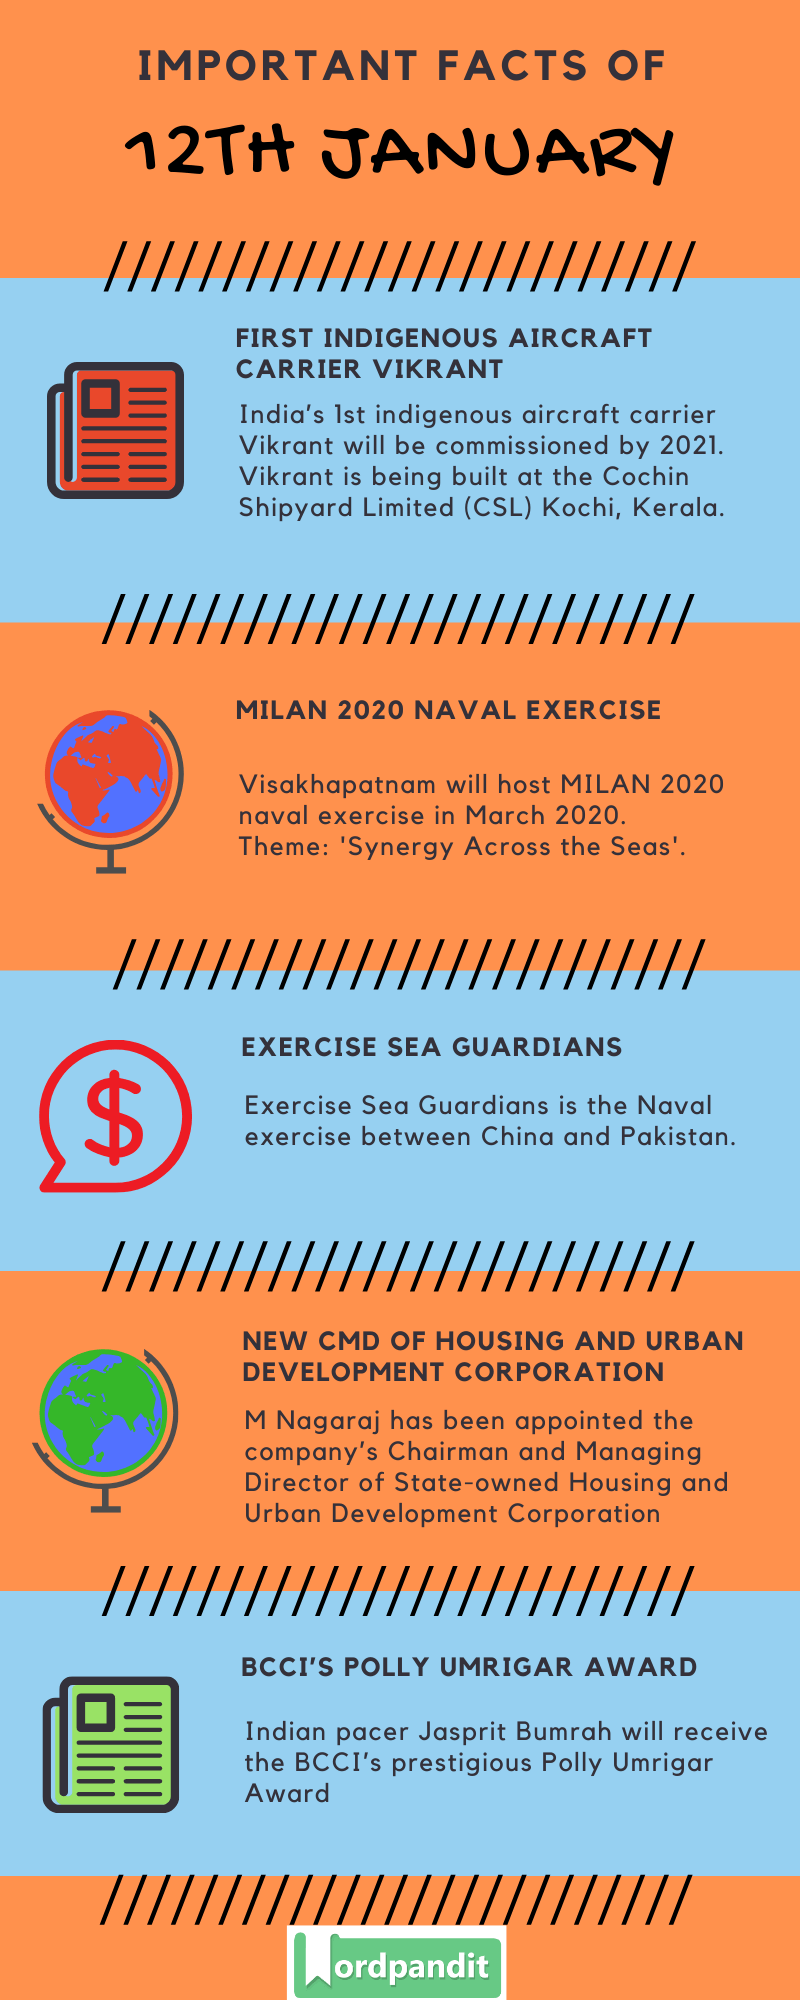 Daily Current Affairs 12 January 2020 Current Affairs Quiz 12 January 2020 Current Affairs Infographic